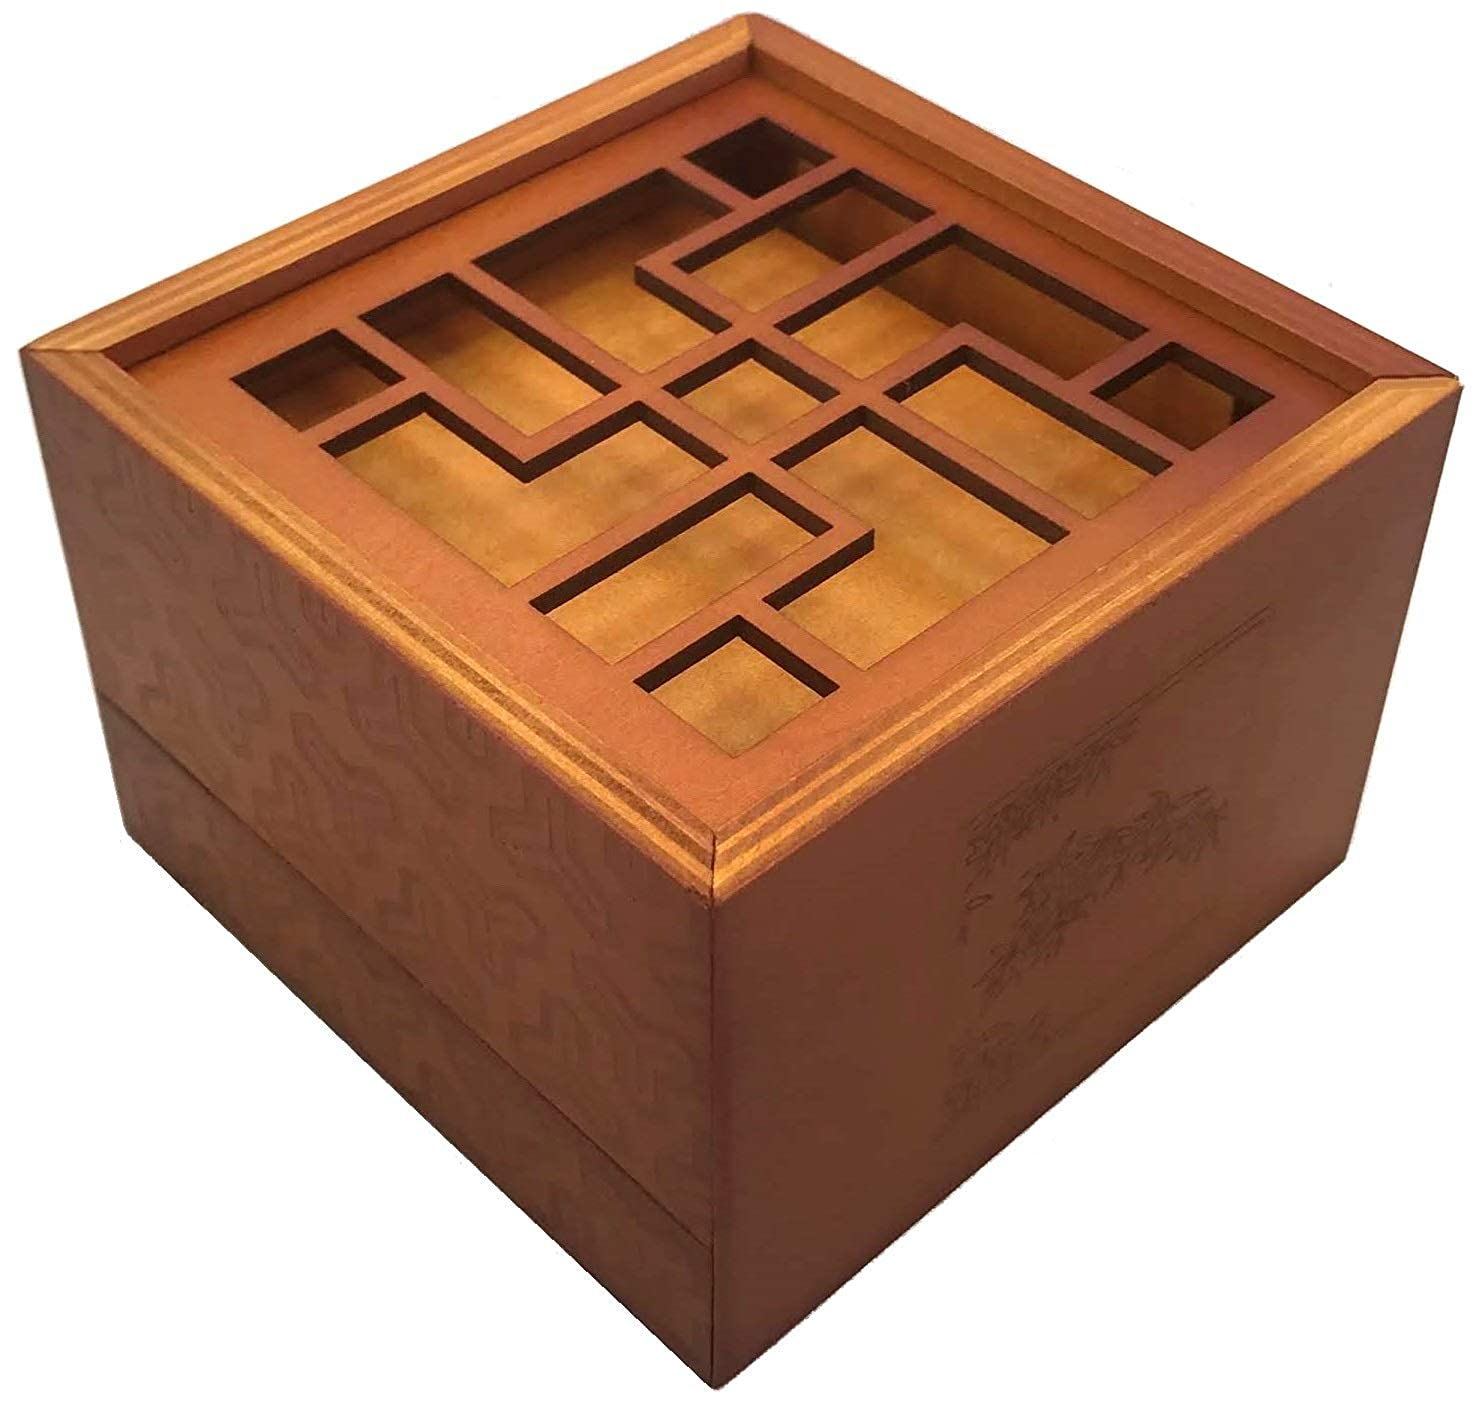 Treasure Secret Puzzle Box Money And Gift Card Holder In A Wood Magic Trick Lock With Two Hidden Compartments Brainteaser Toy